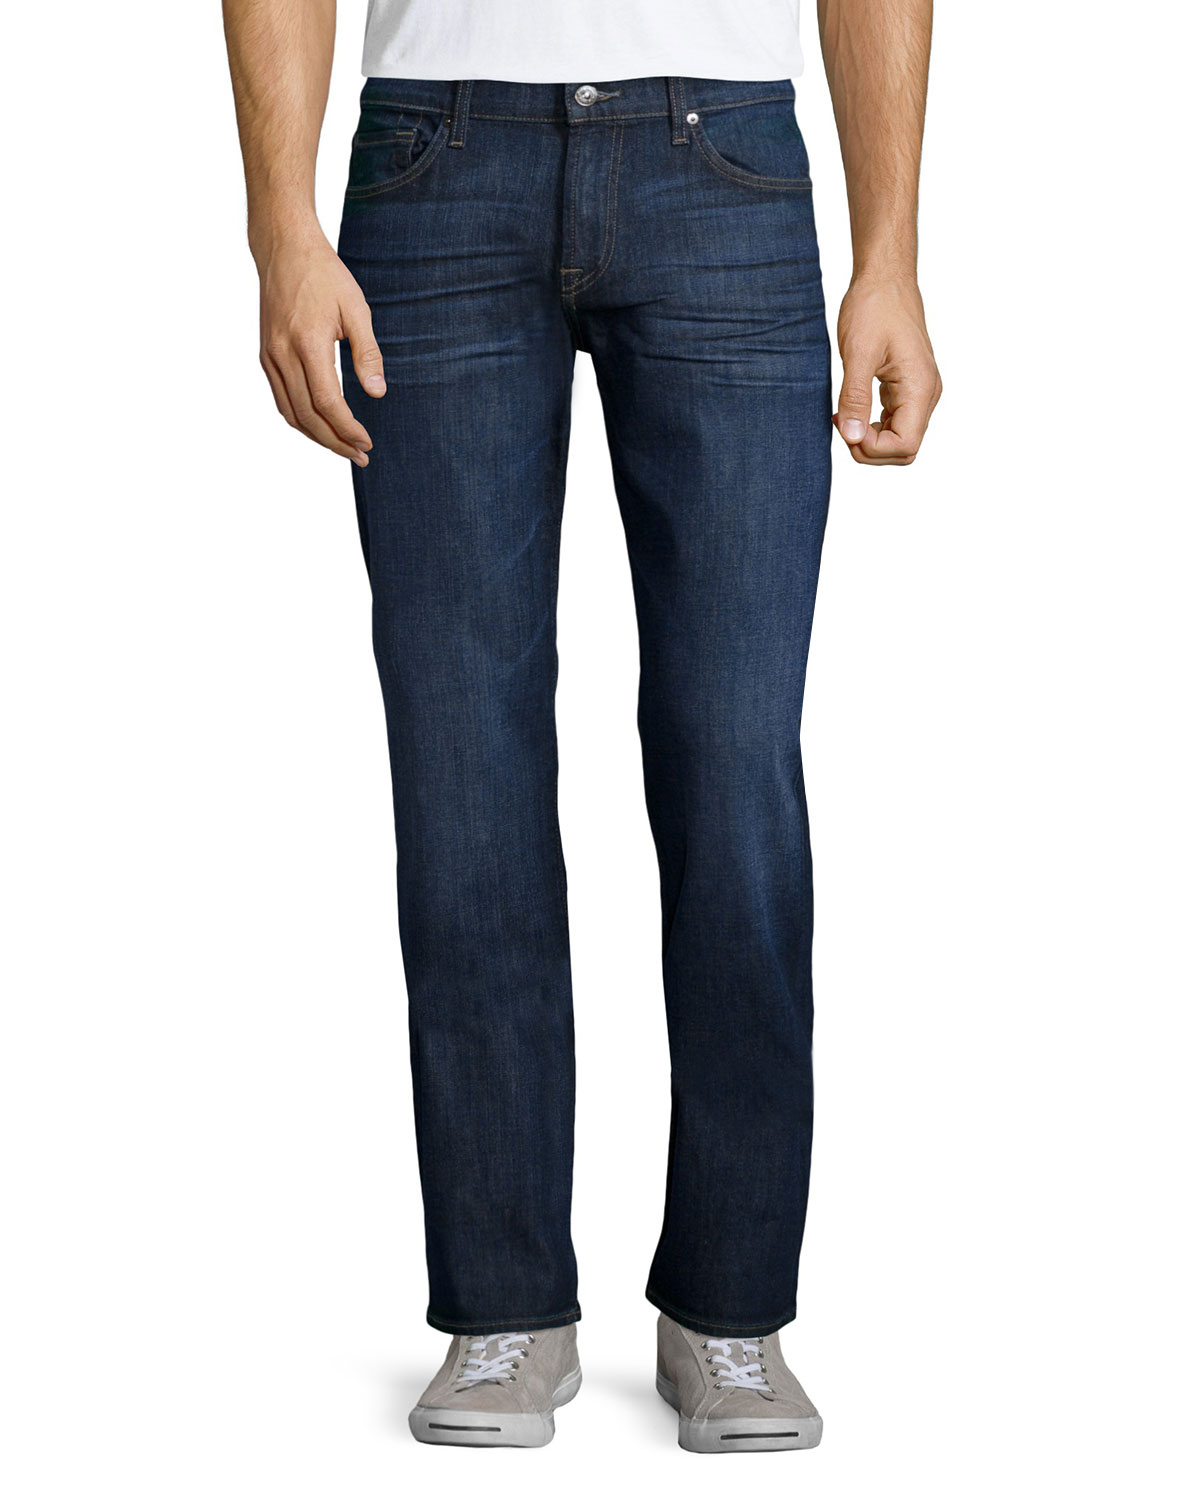 lyst 7 for all mankind standard classic straight leg jeans in blue for men. Black Bedroom Furniture Sets. Home Design Ideas